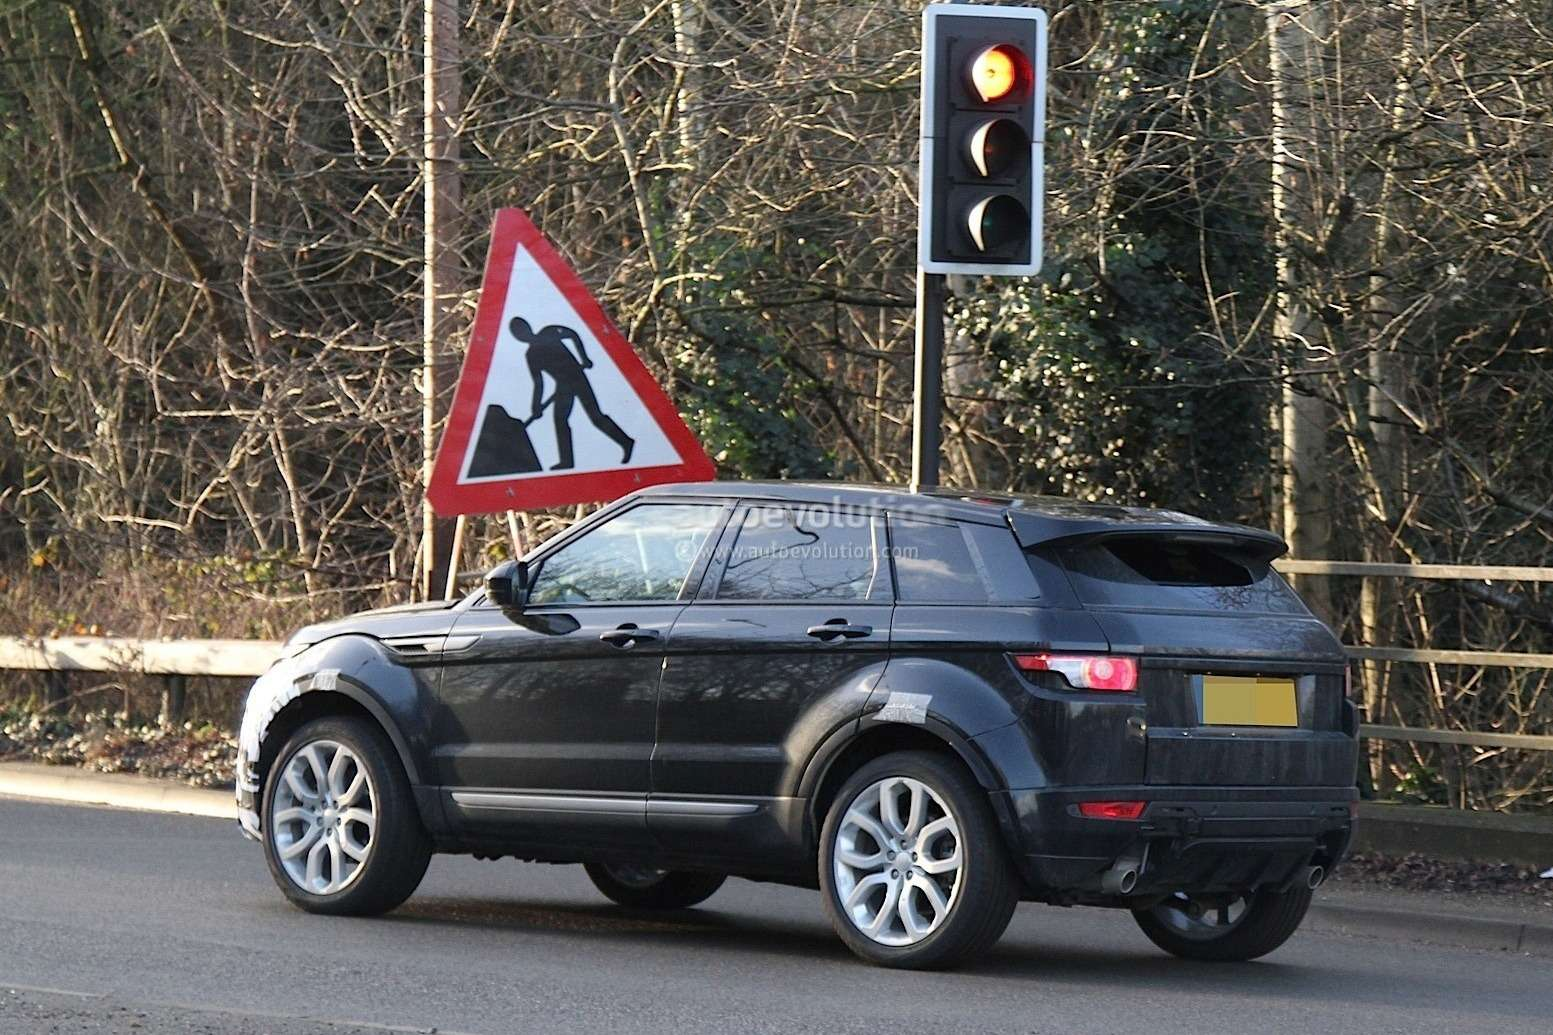 2016-range-rover-evoque-mid-life-facelift-spied-ingenium-diesel-engines-coming-to-us_1